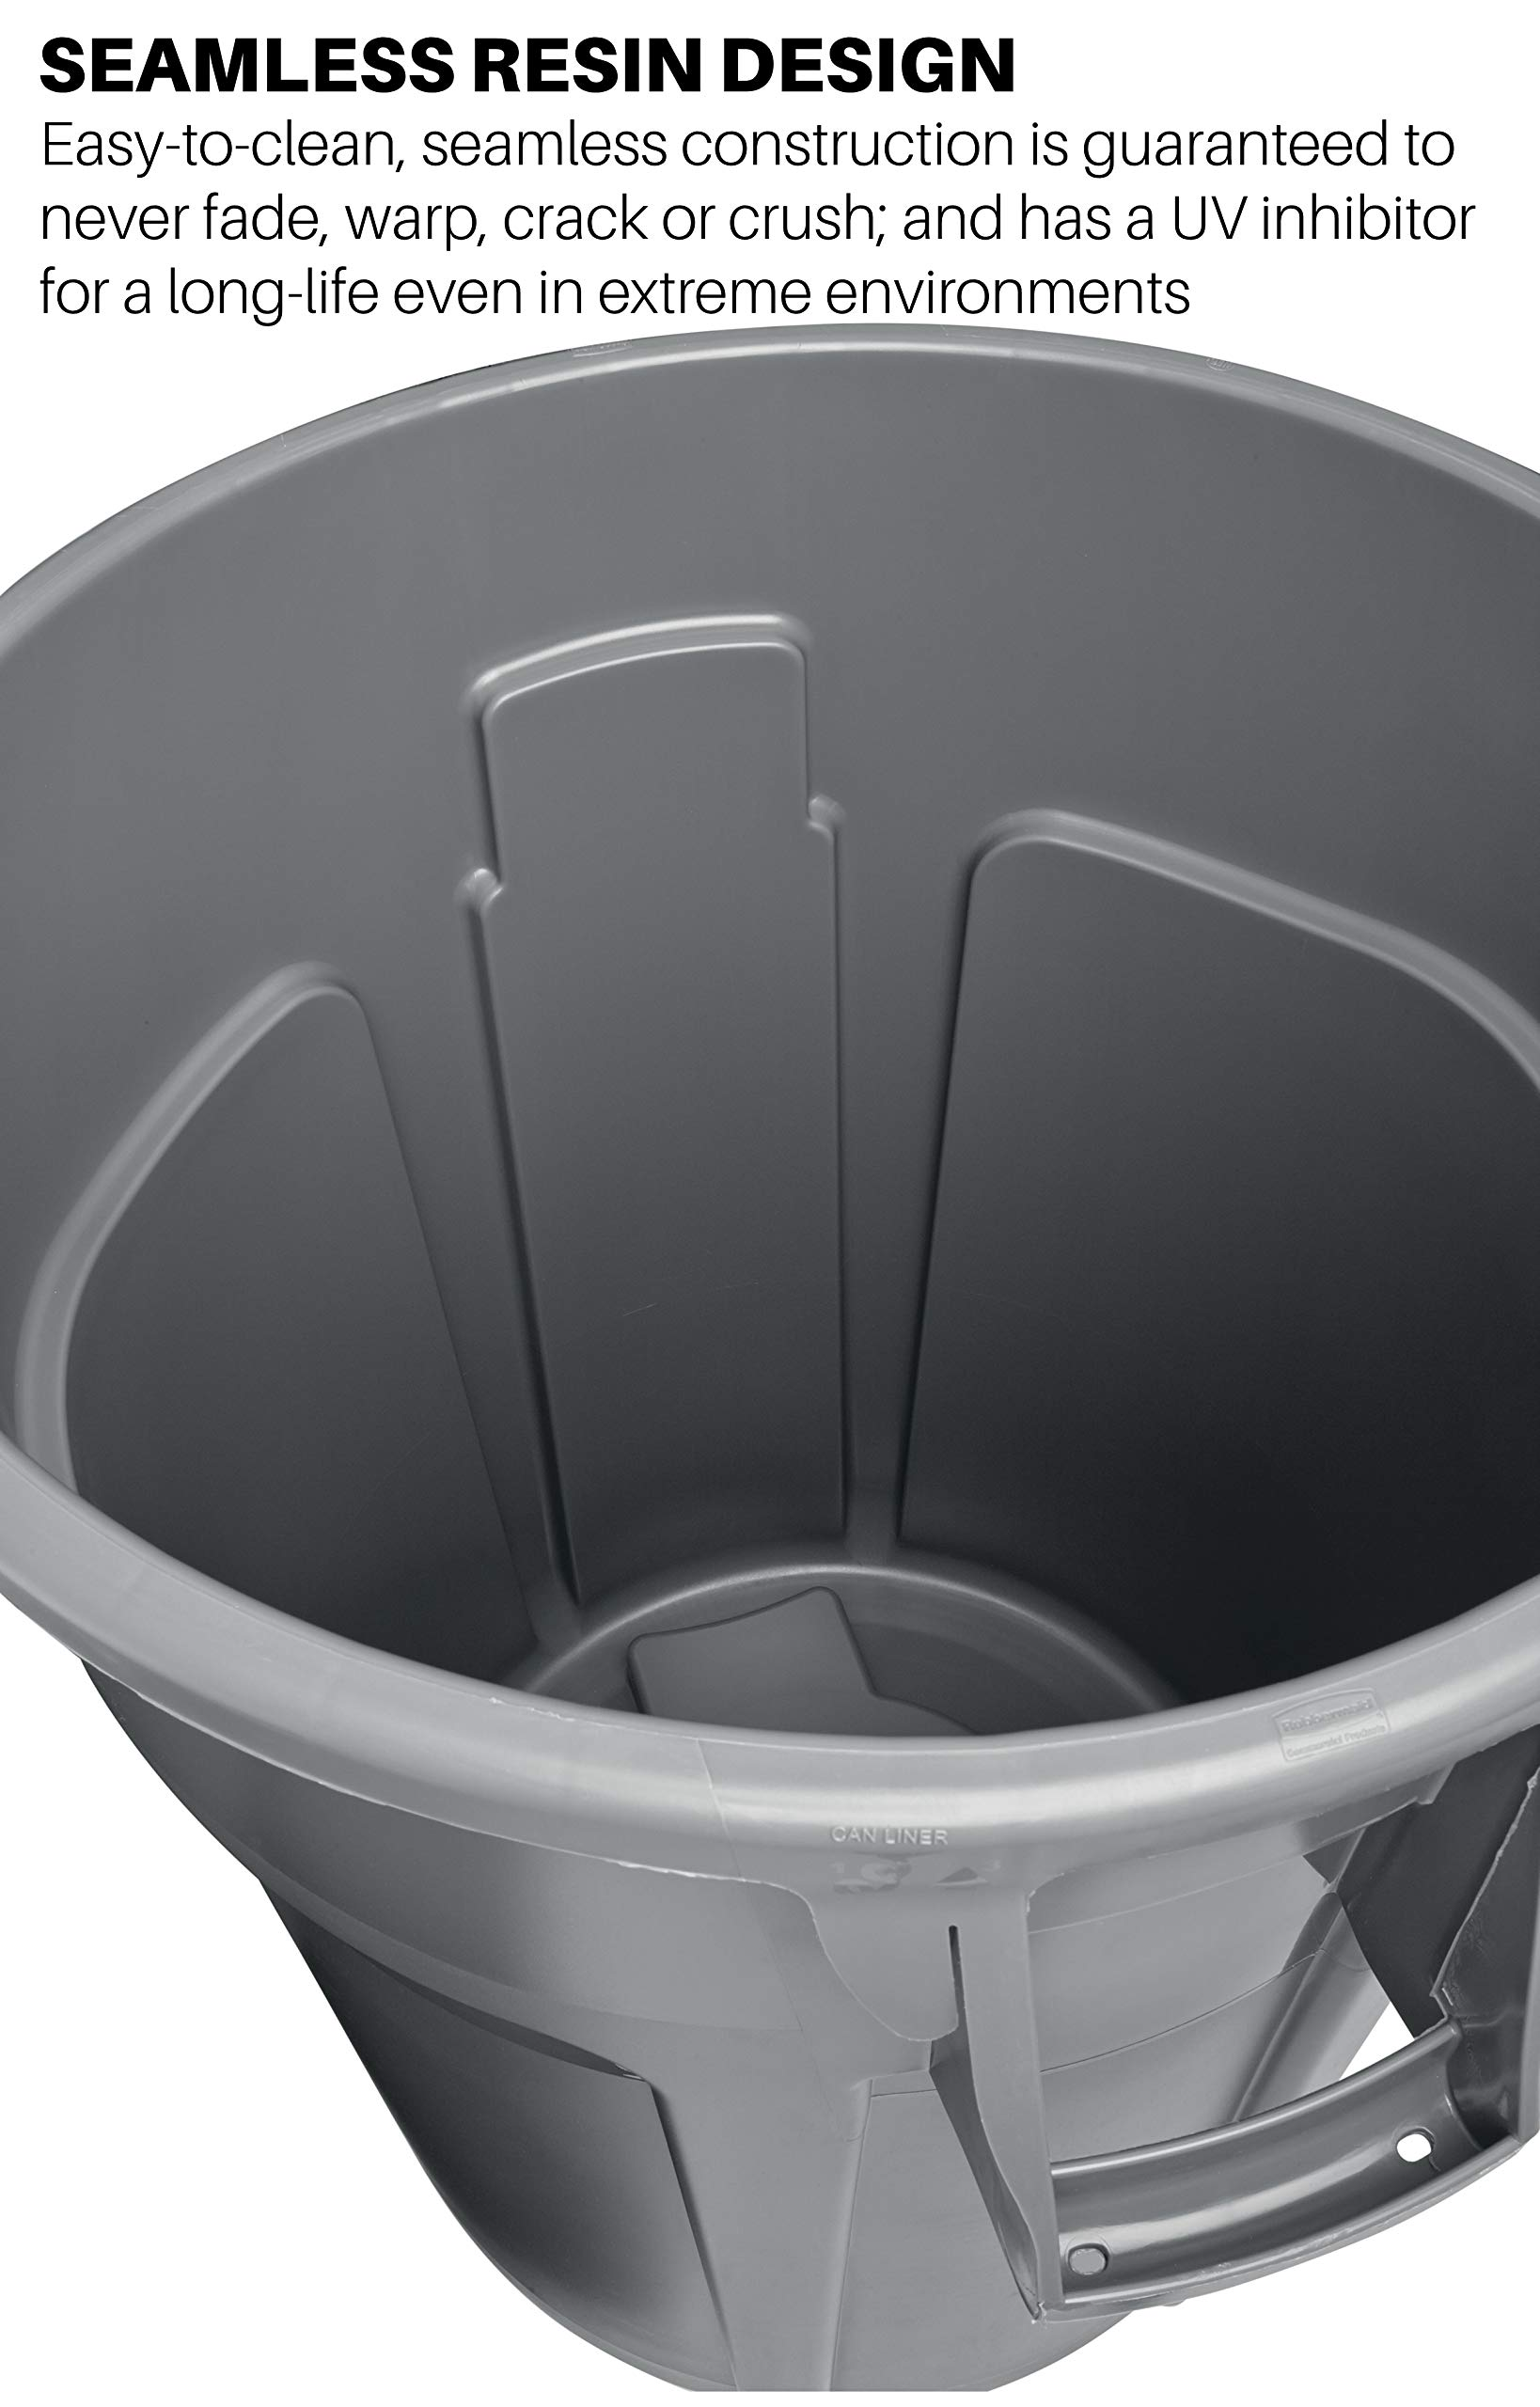 Rubbermaid Commercial Products FG264360GRAY BRUTE Heavy-Duty Round Trash/Garbage Can, 44-Gallon, Gray by Rubbermaid Commercial Products (Image #3)